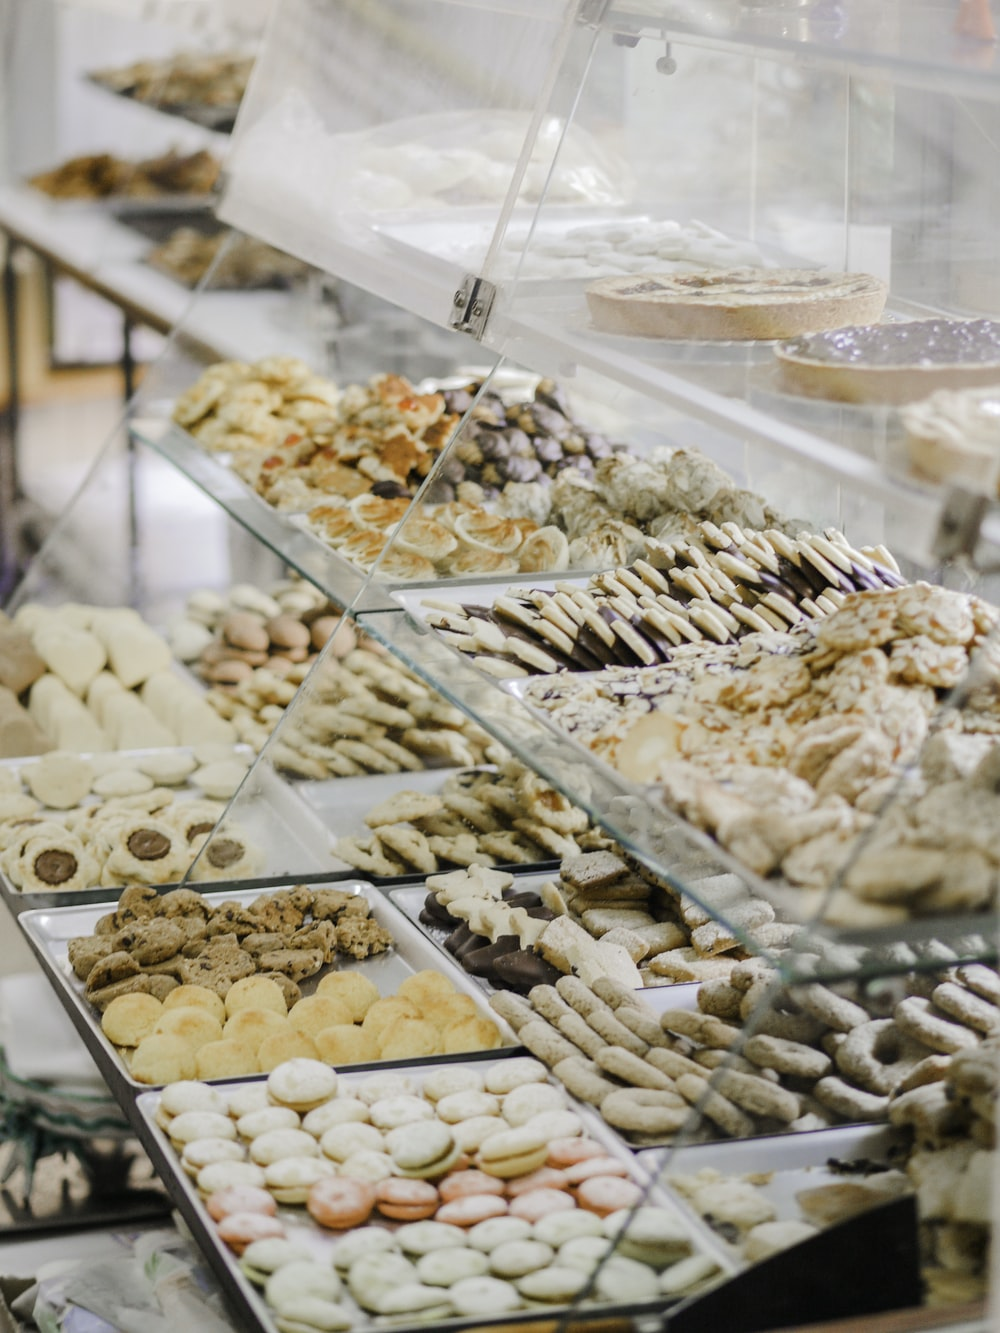 How Sweet Food Is Associated With Food Liking?